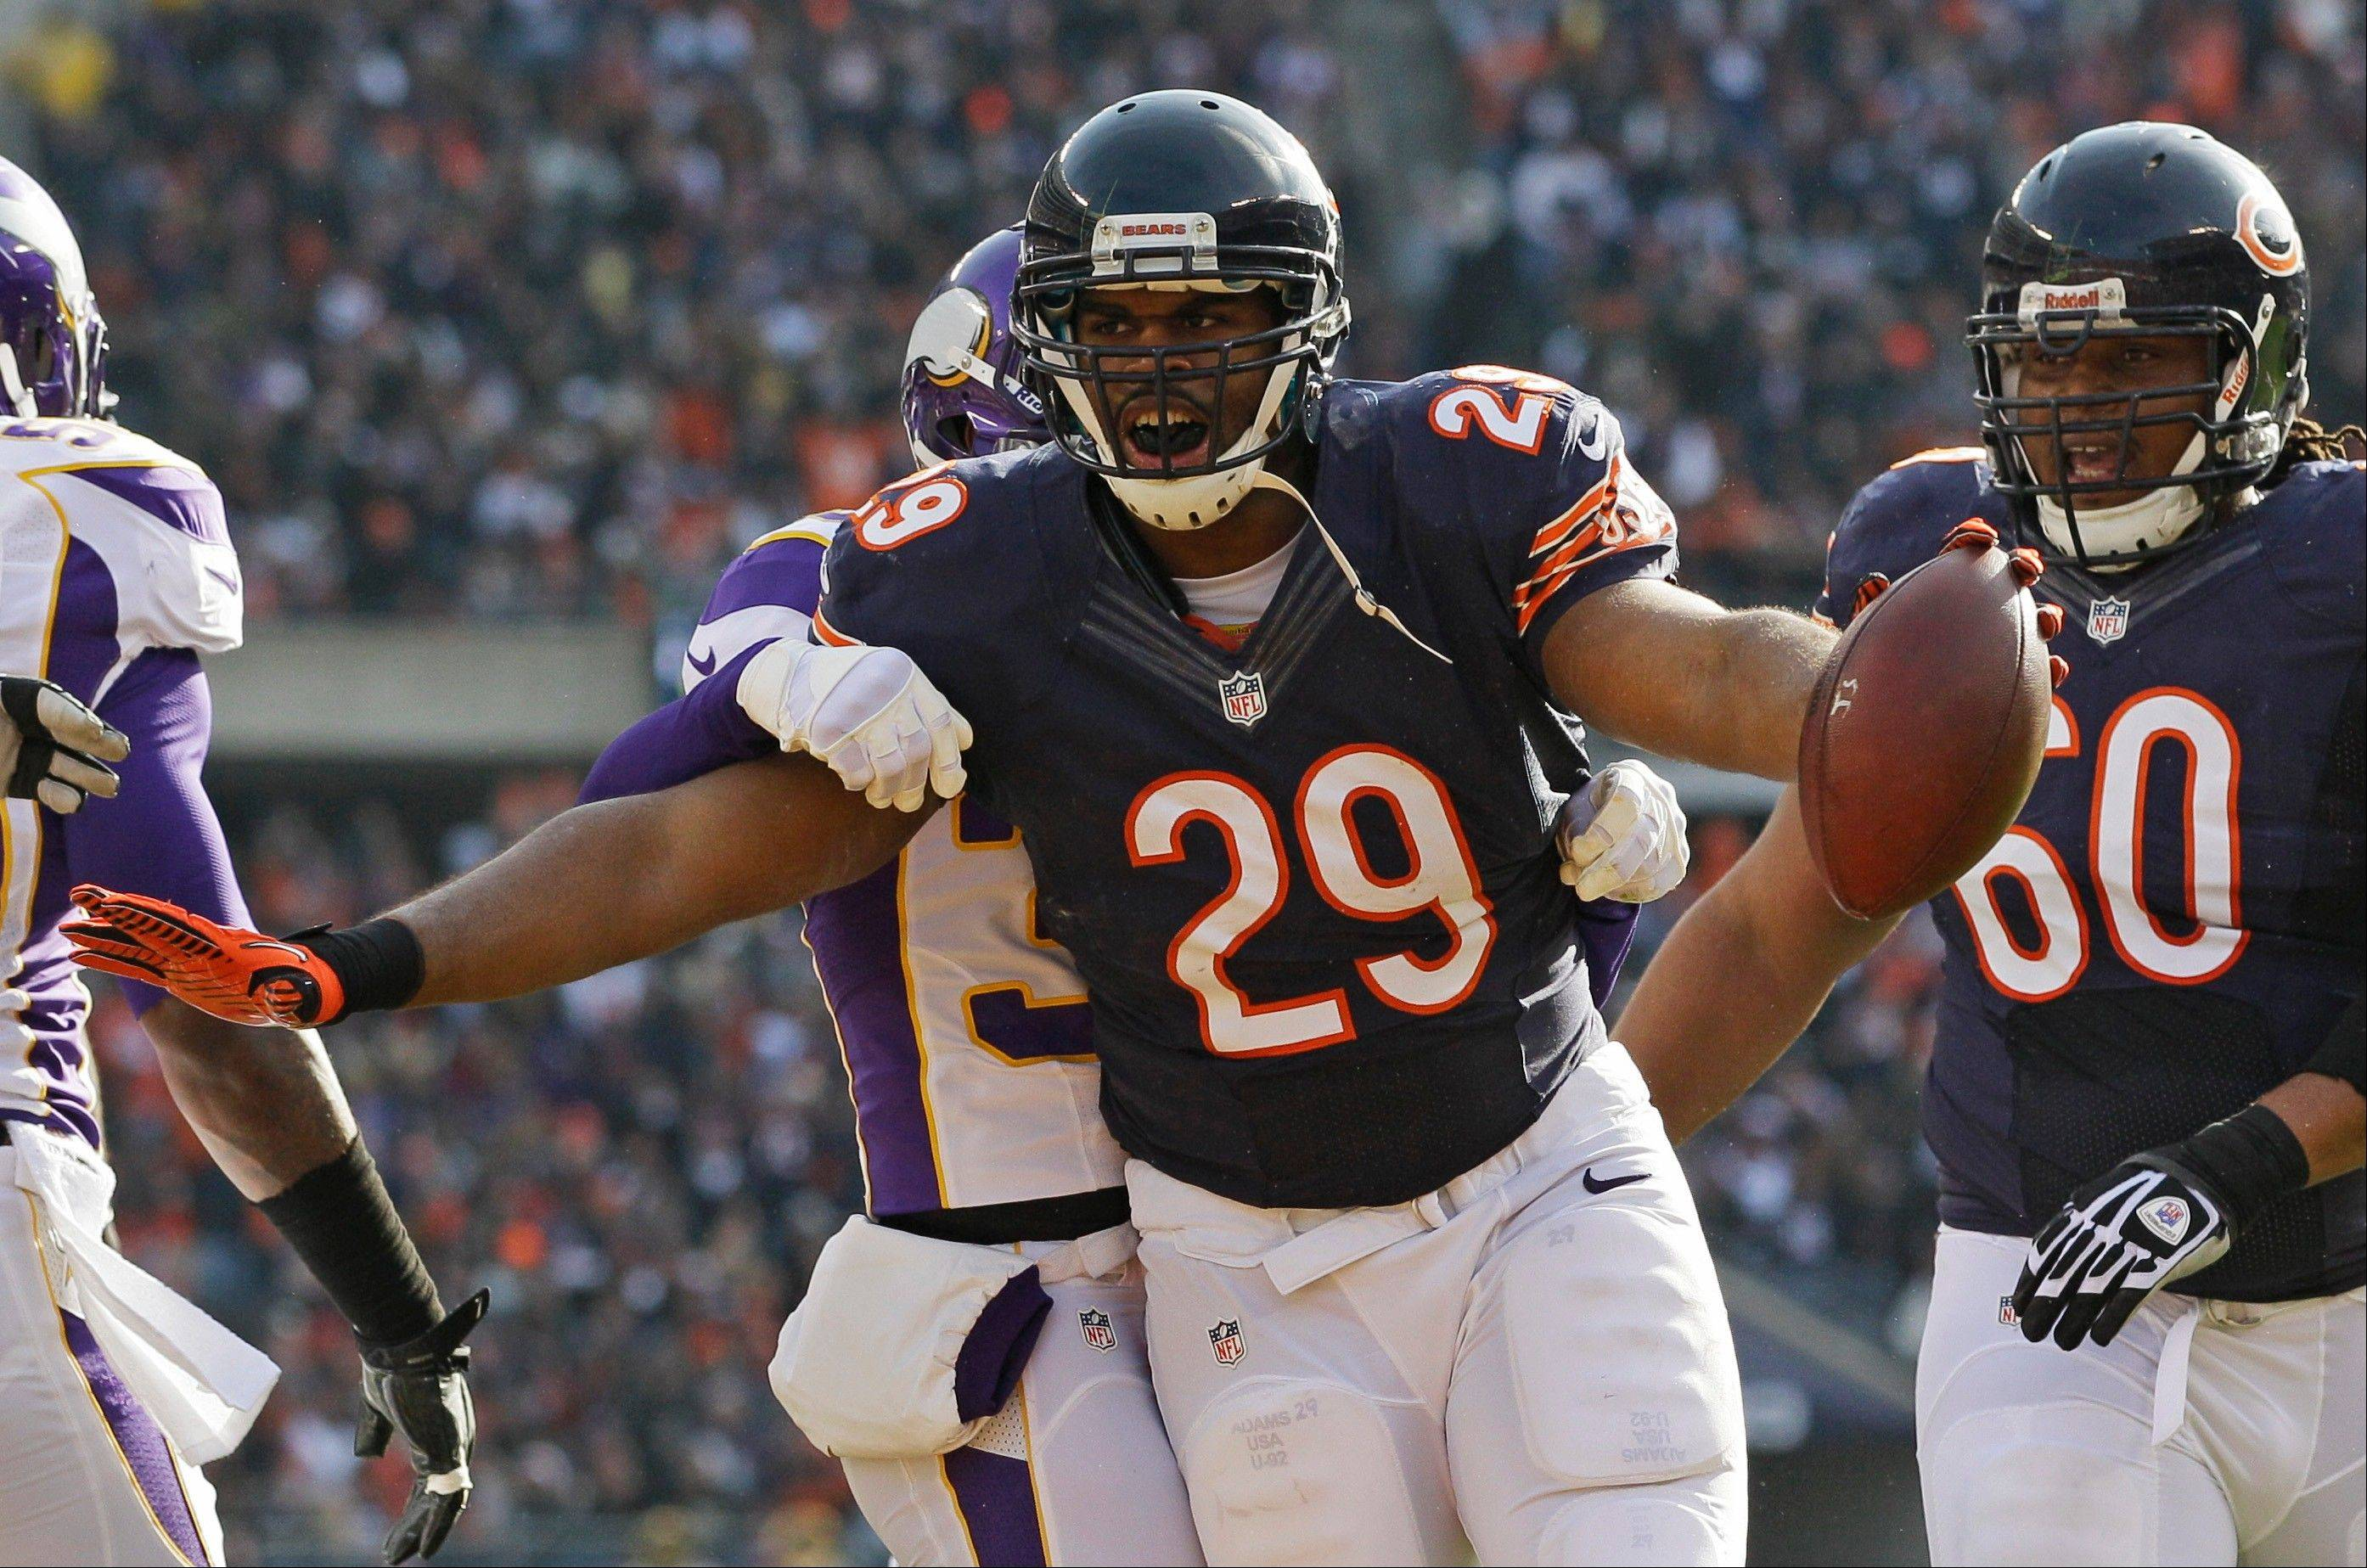 Chicago Bears running back Michael Bush (29) celebrates his touchdown run in the first half of an NFL football game against the Minnesota Vikings in Chicago, Sunday.